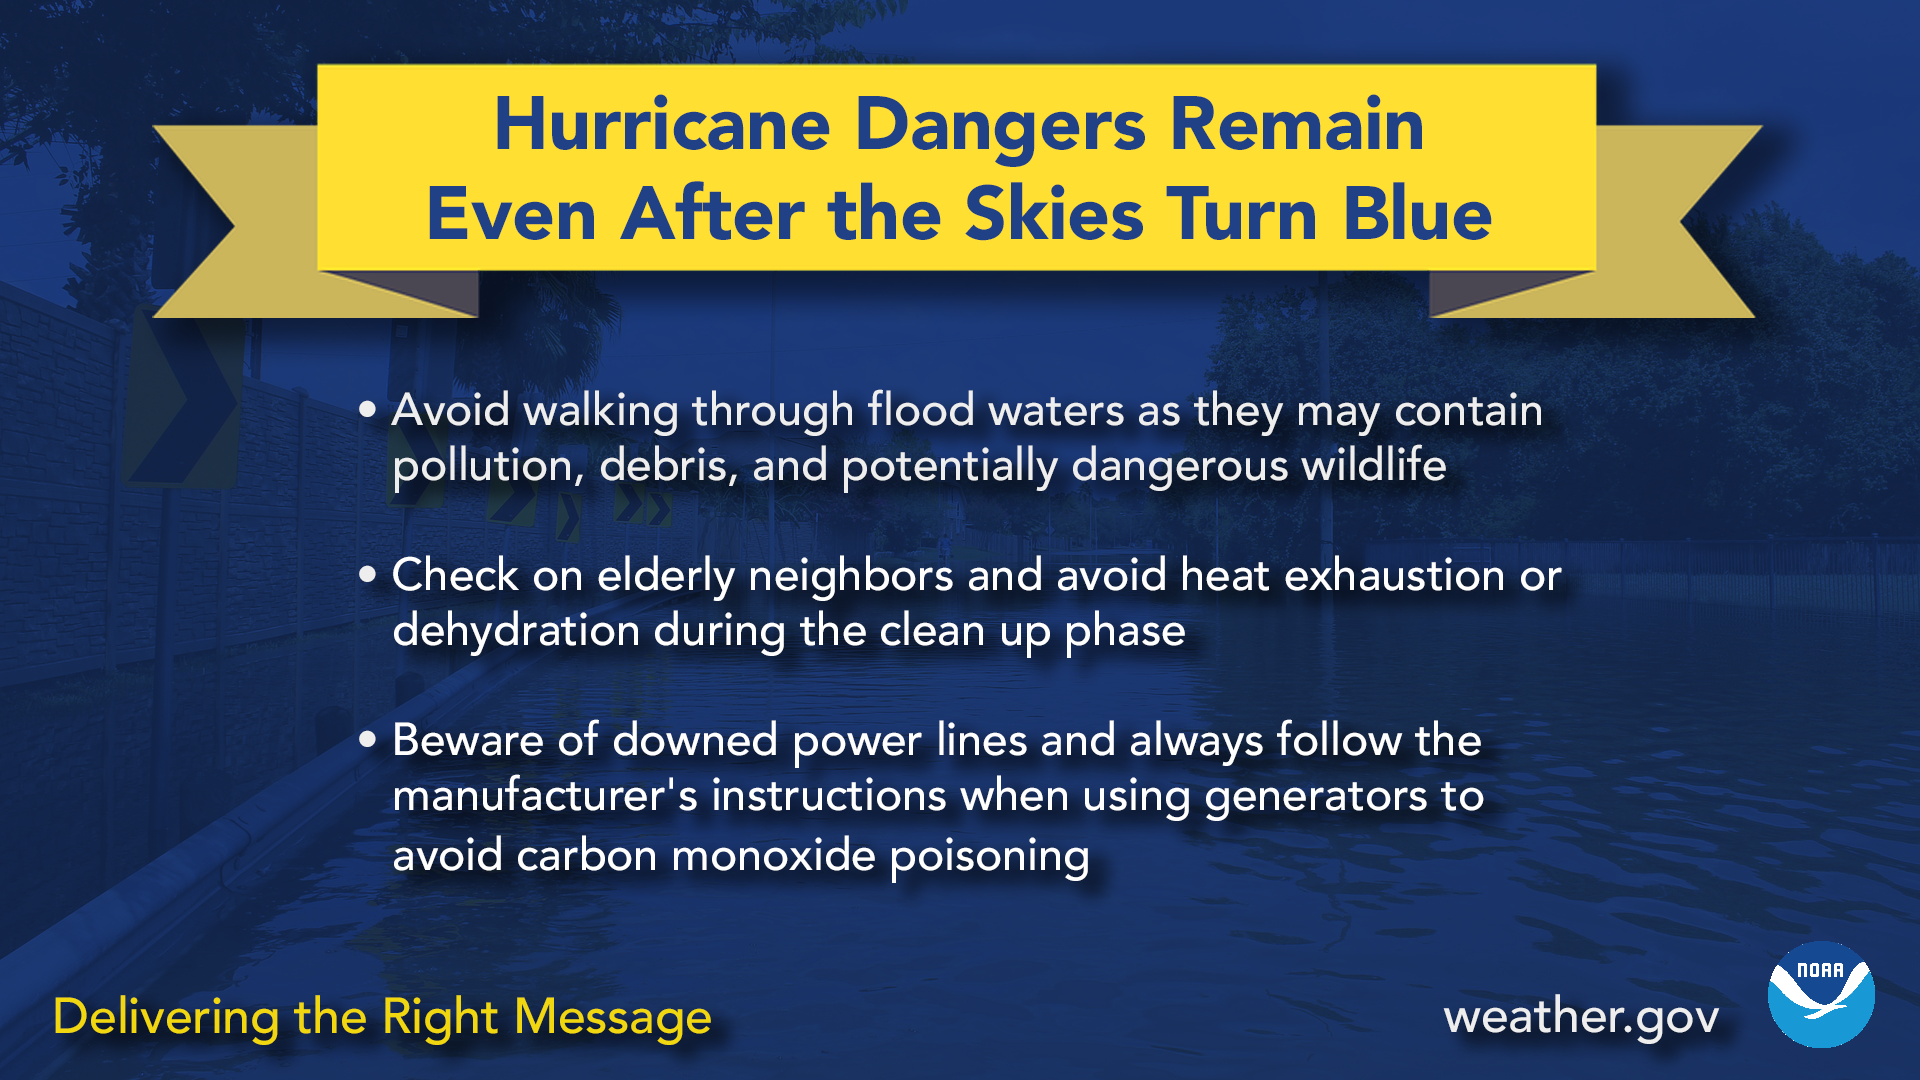 Hurricane dangers remain even after the skies turn blue